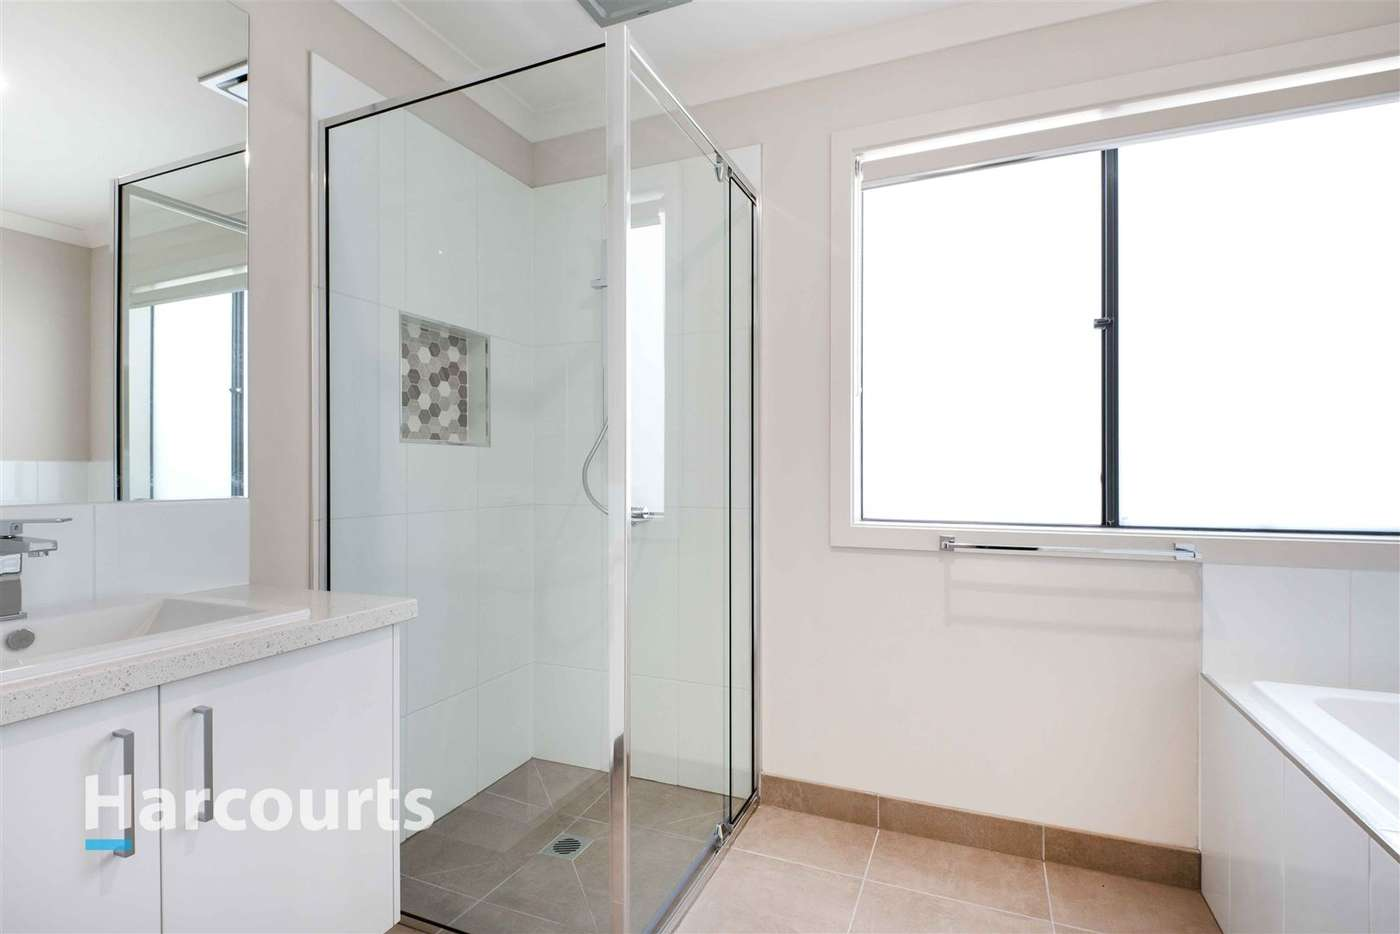 Sixth view of Homely house listing, 29 Australorp Drive, Clyde North VIC 3978